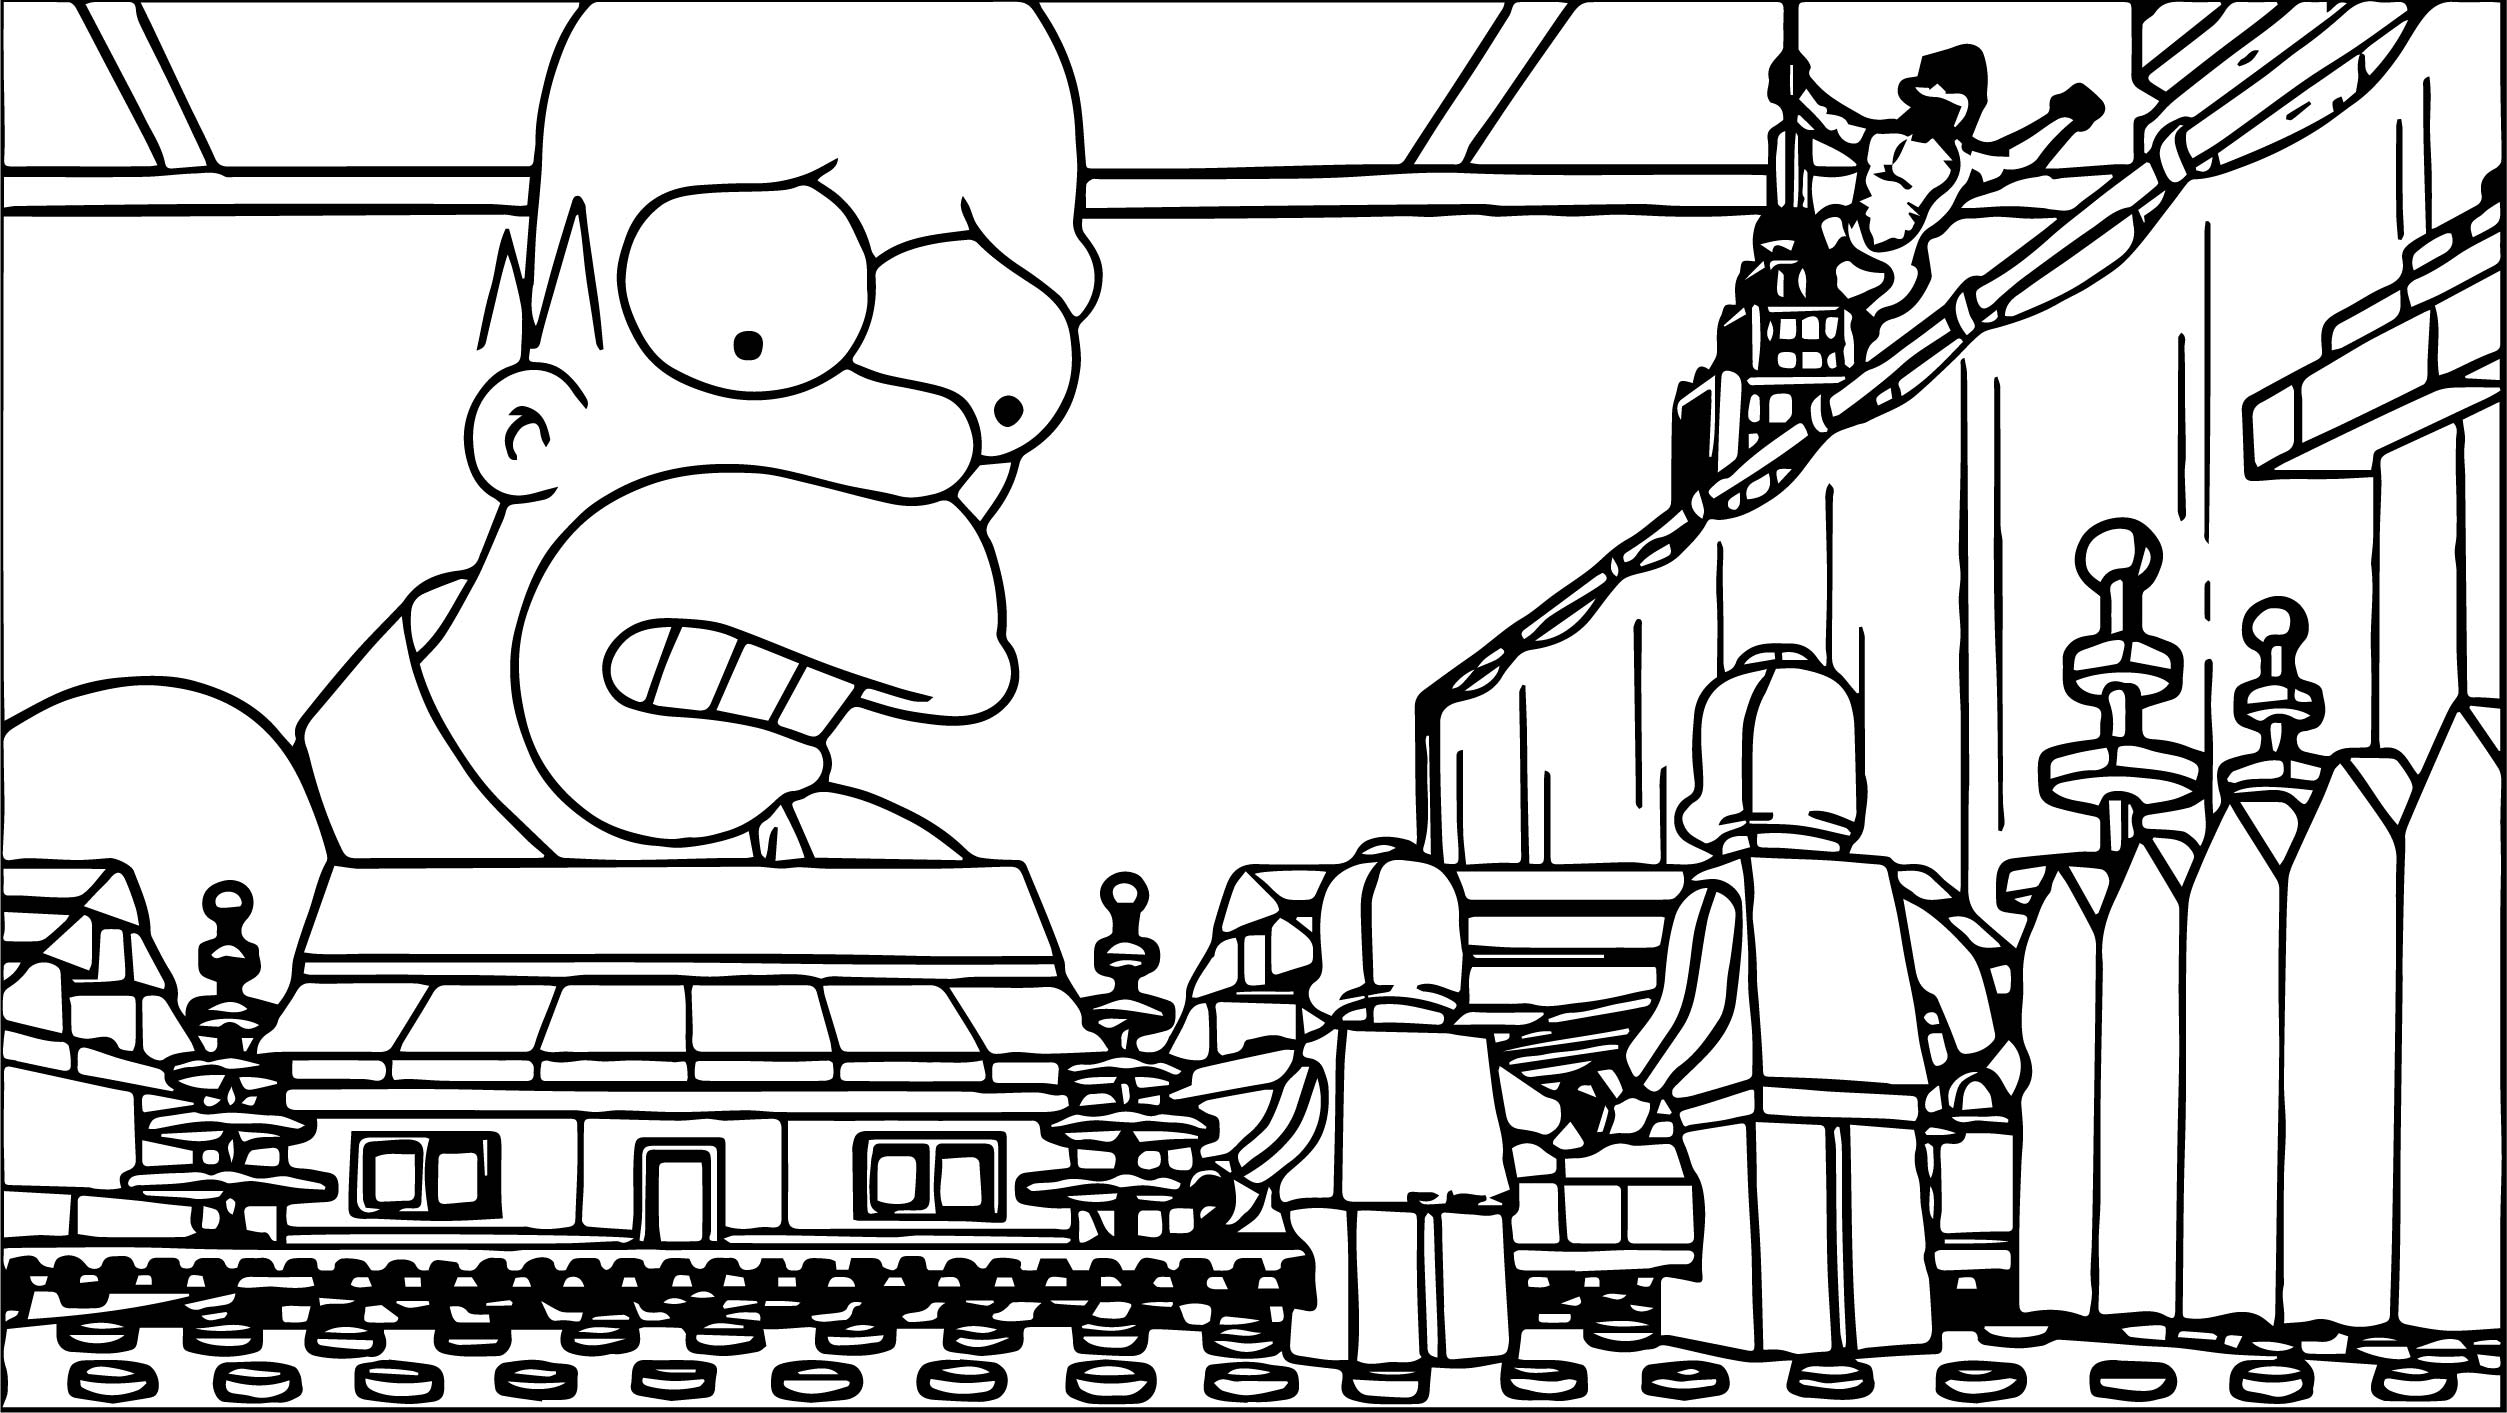 The Simpsons Coloring Pages Lego The Simpsons Coloring Page Wecoloringpage